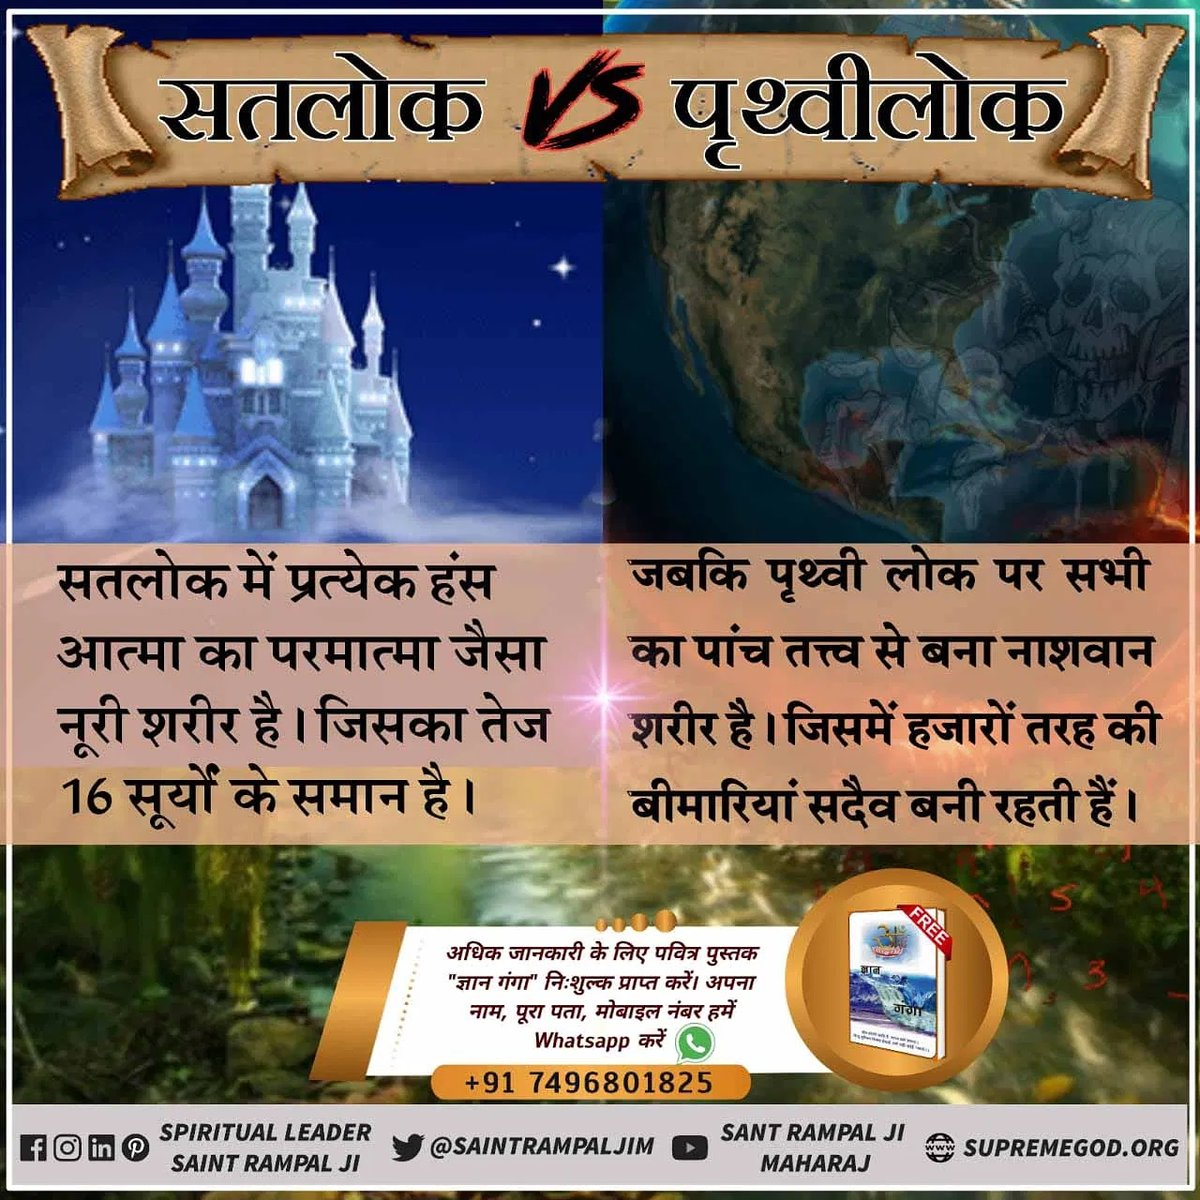 On the earth one suffers according to his deeds.There is no scarcity in Satlok, everyone gets from the quota of God and for that reason there is no attachment and malice. All live together in harmony and praise God. @SaintRampalJiM   #ThursdayMotivation #अमरलोक_VS_मृत्युलोक